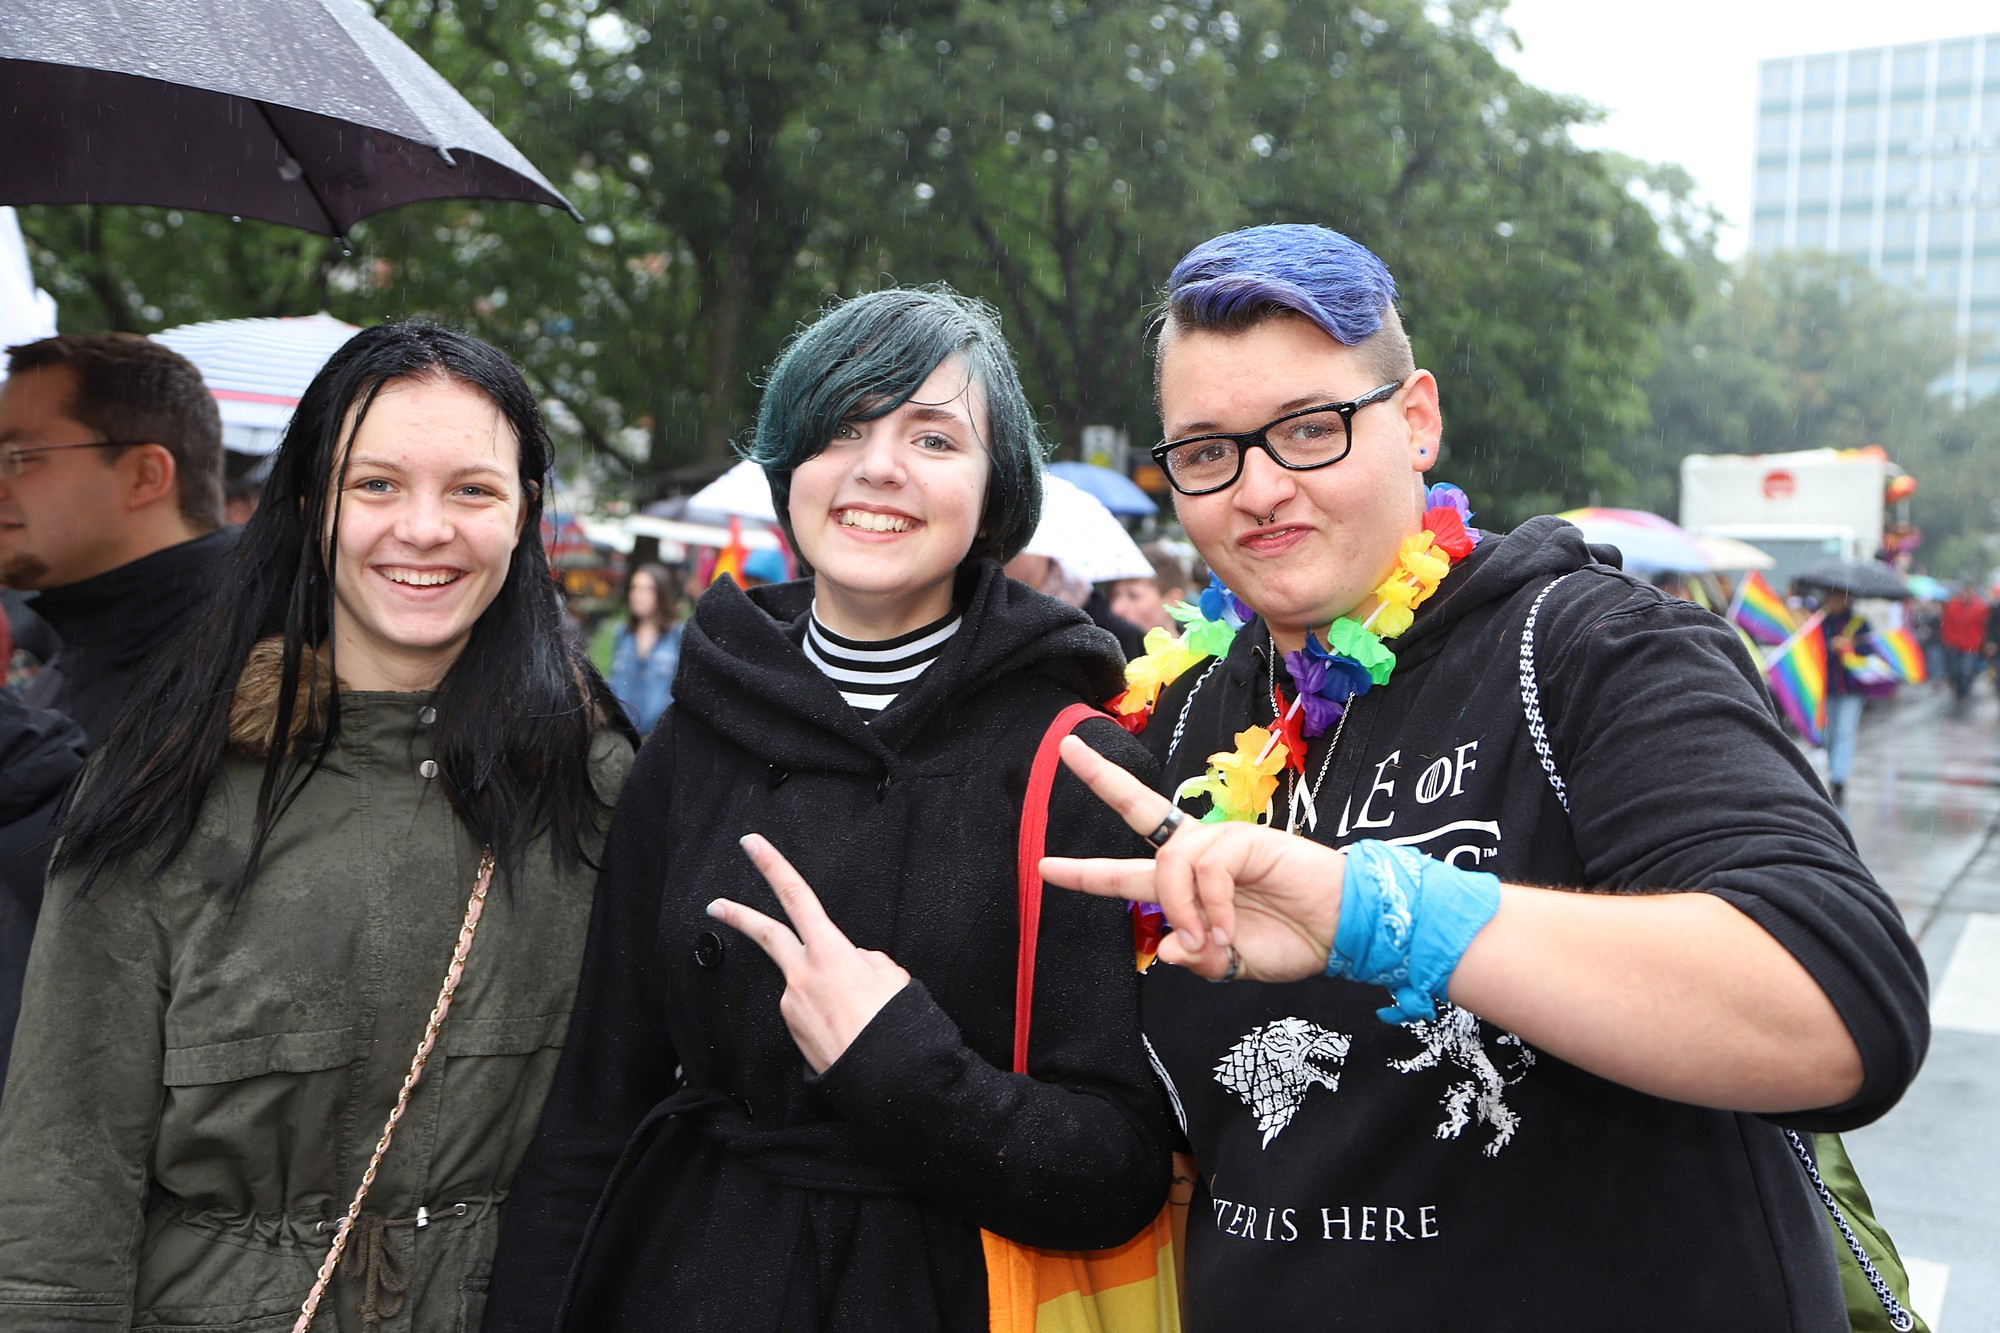 CSD Kiel - Demonstration & Straßenfest / 467x betrachtet